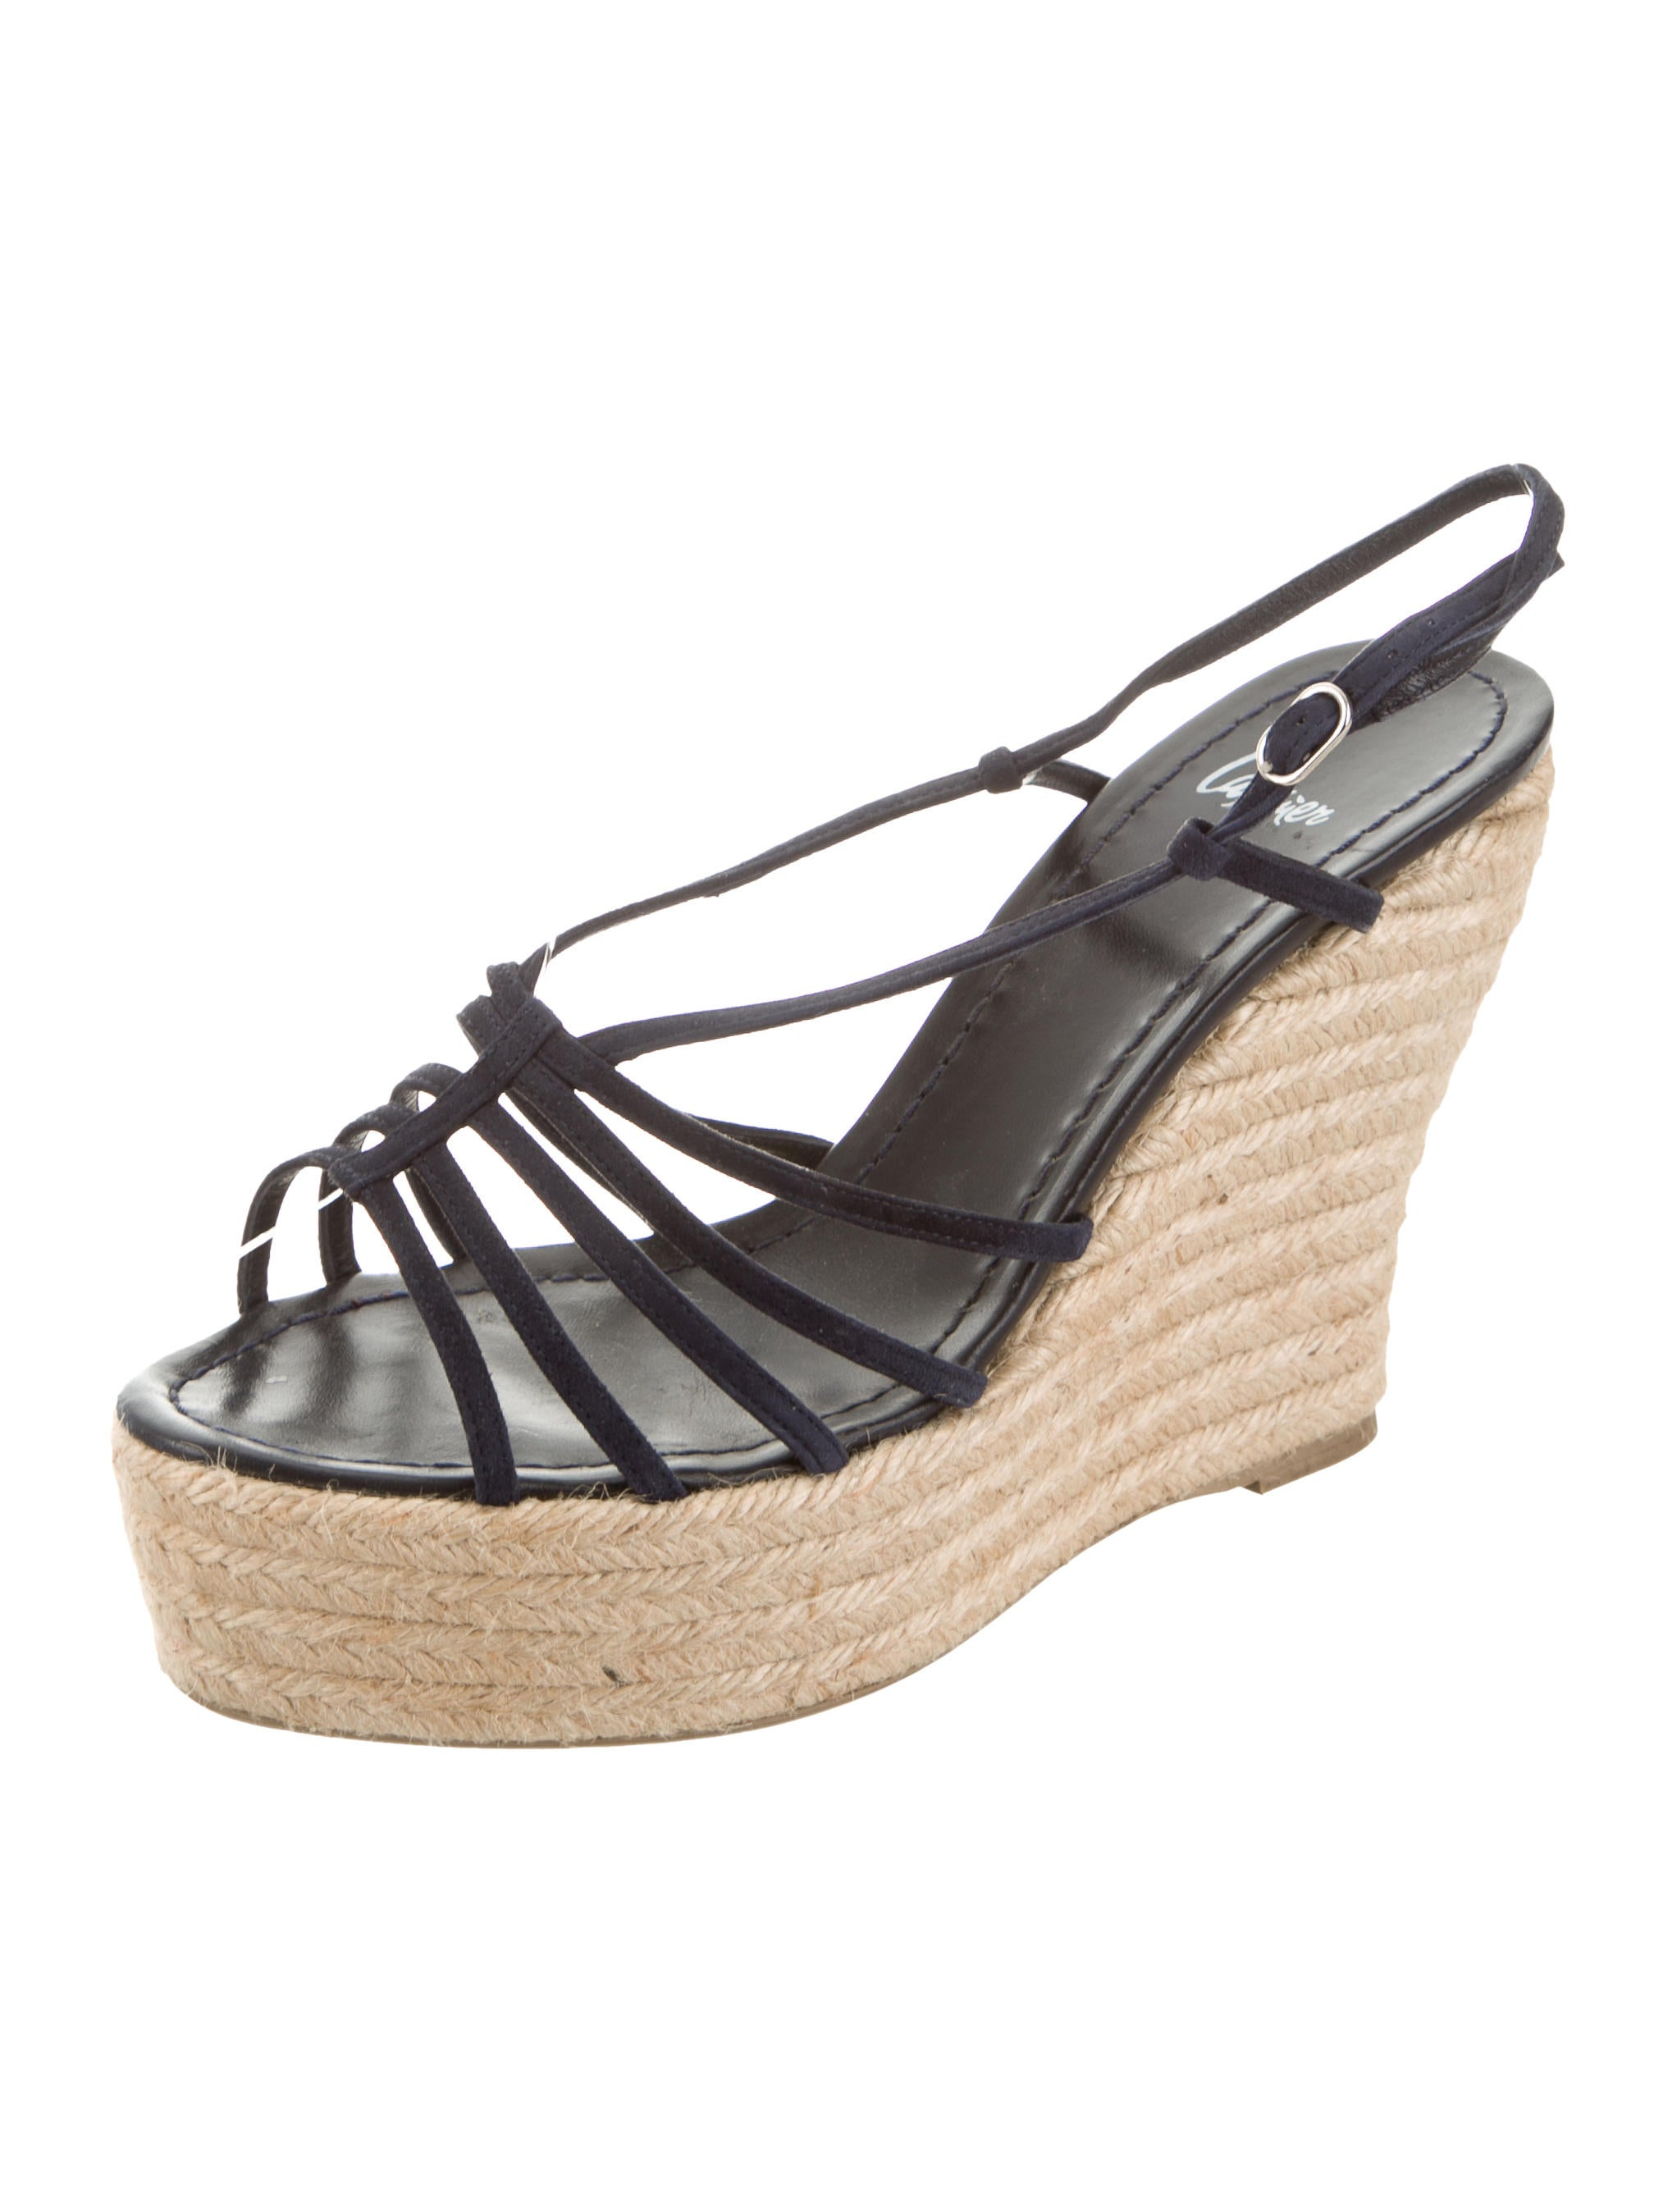 low cost Caytaner Belina Platform Espadrille Wedges limited edition cheap price footlocker finishline cheap price cheap professional uPJswk